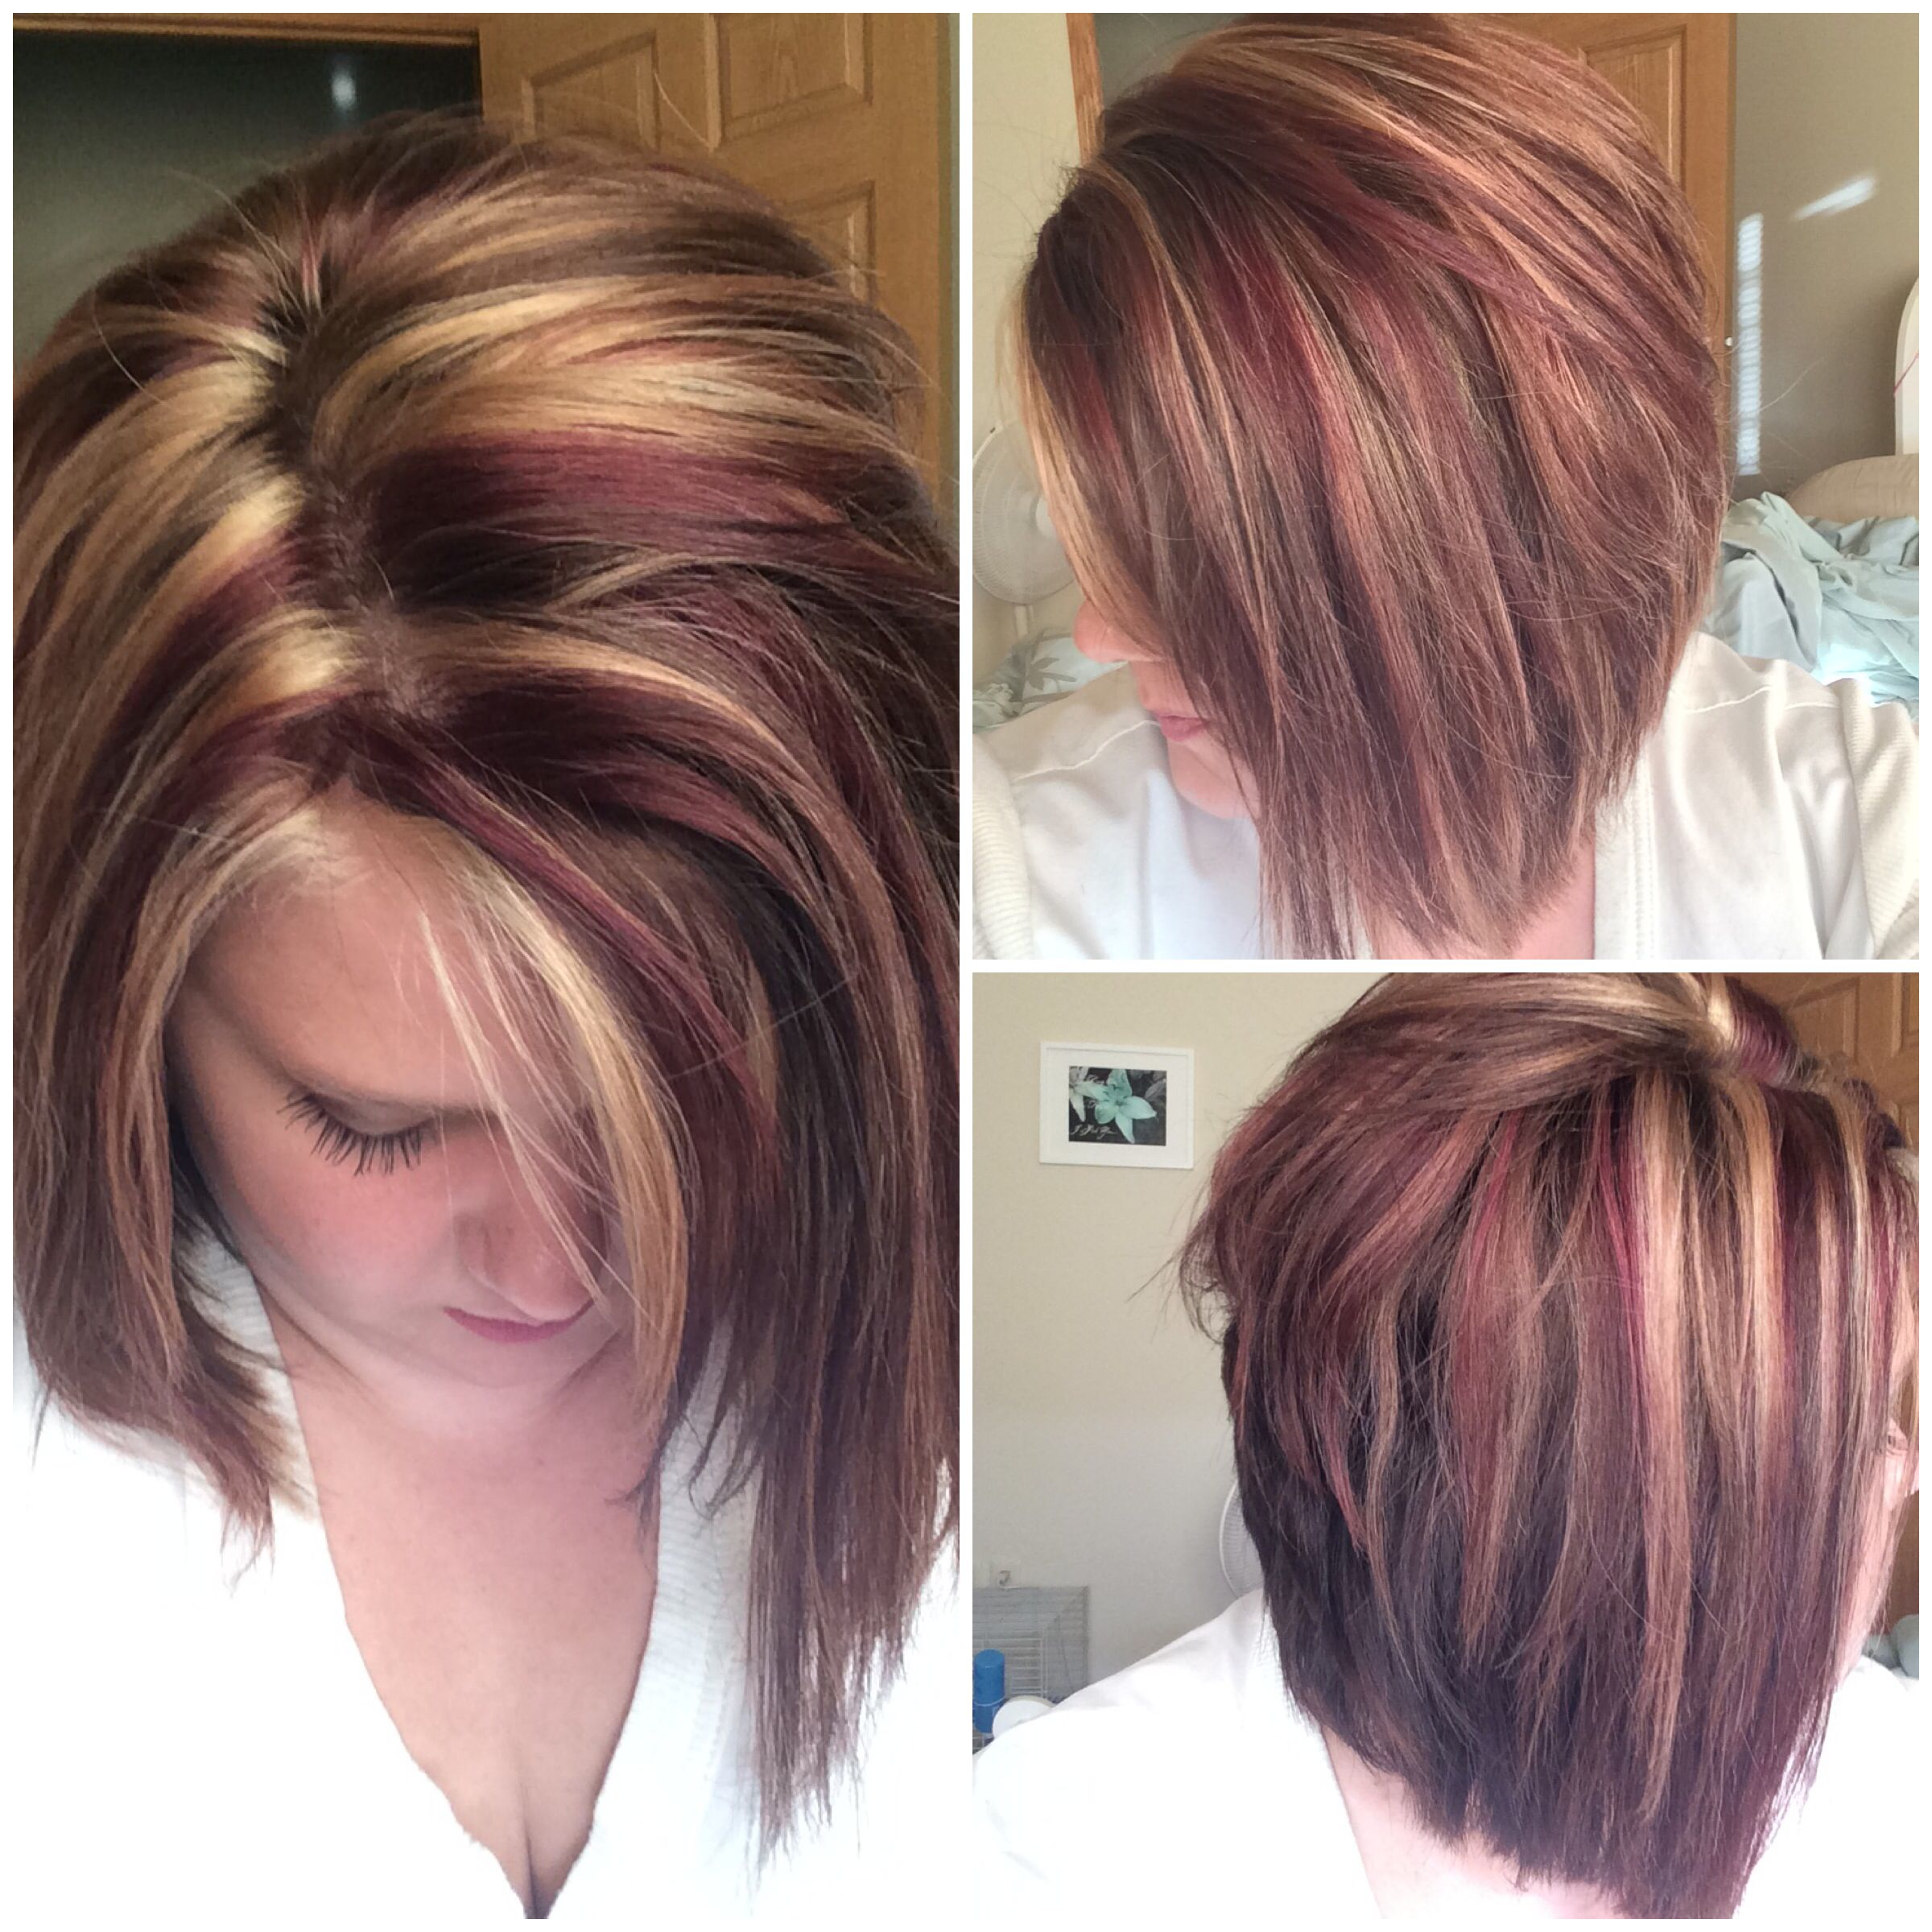 Red And Blonde Highlights On Angled Bob